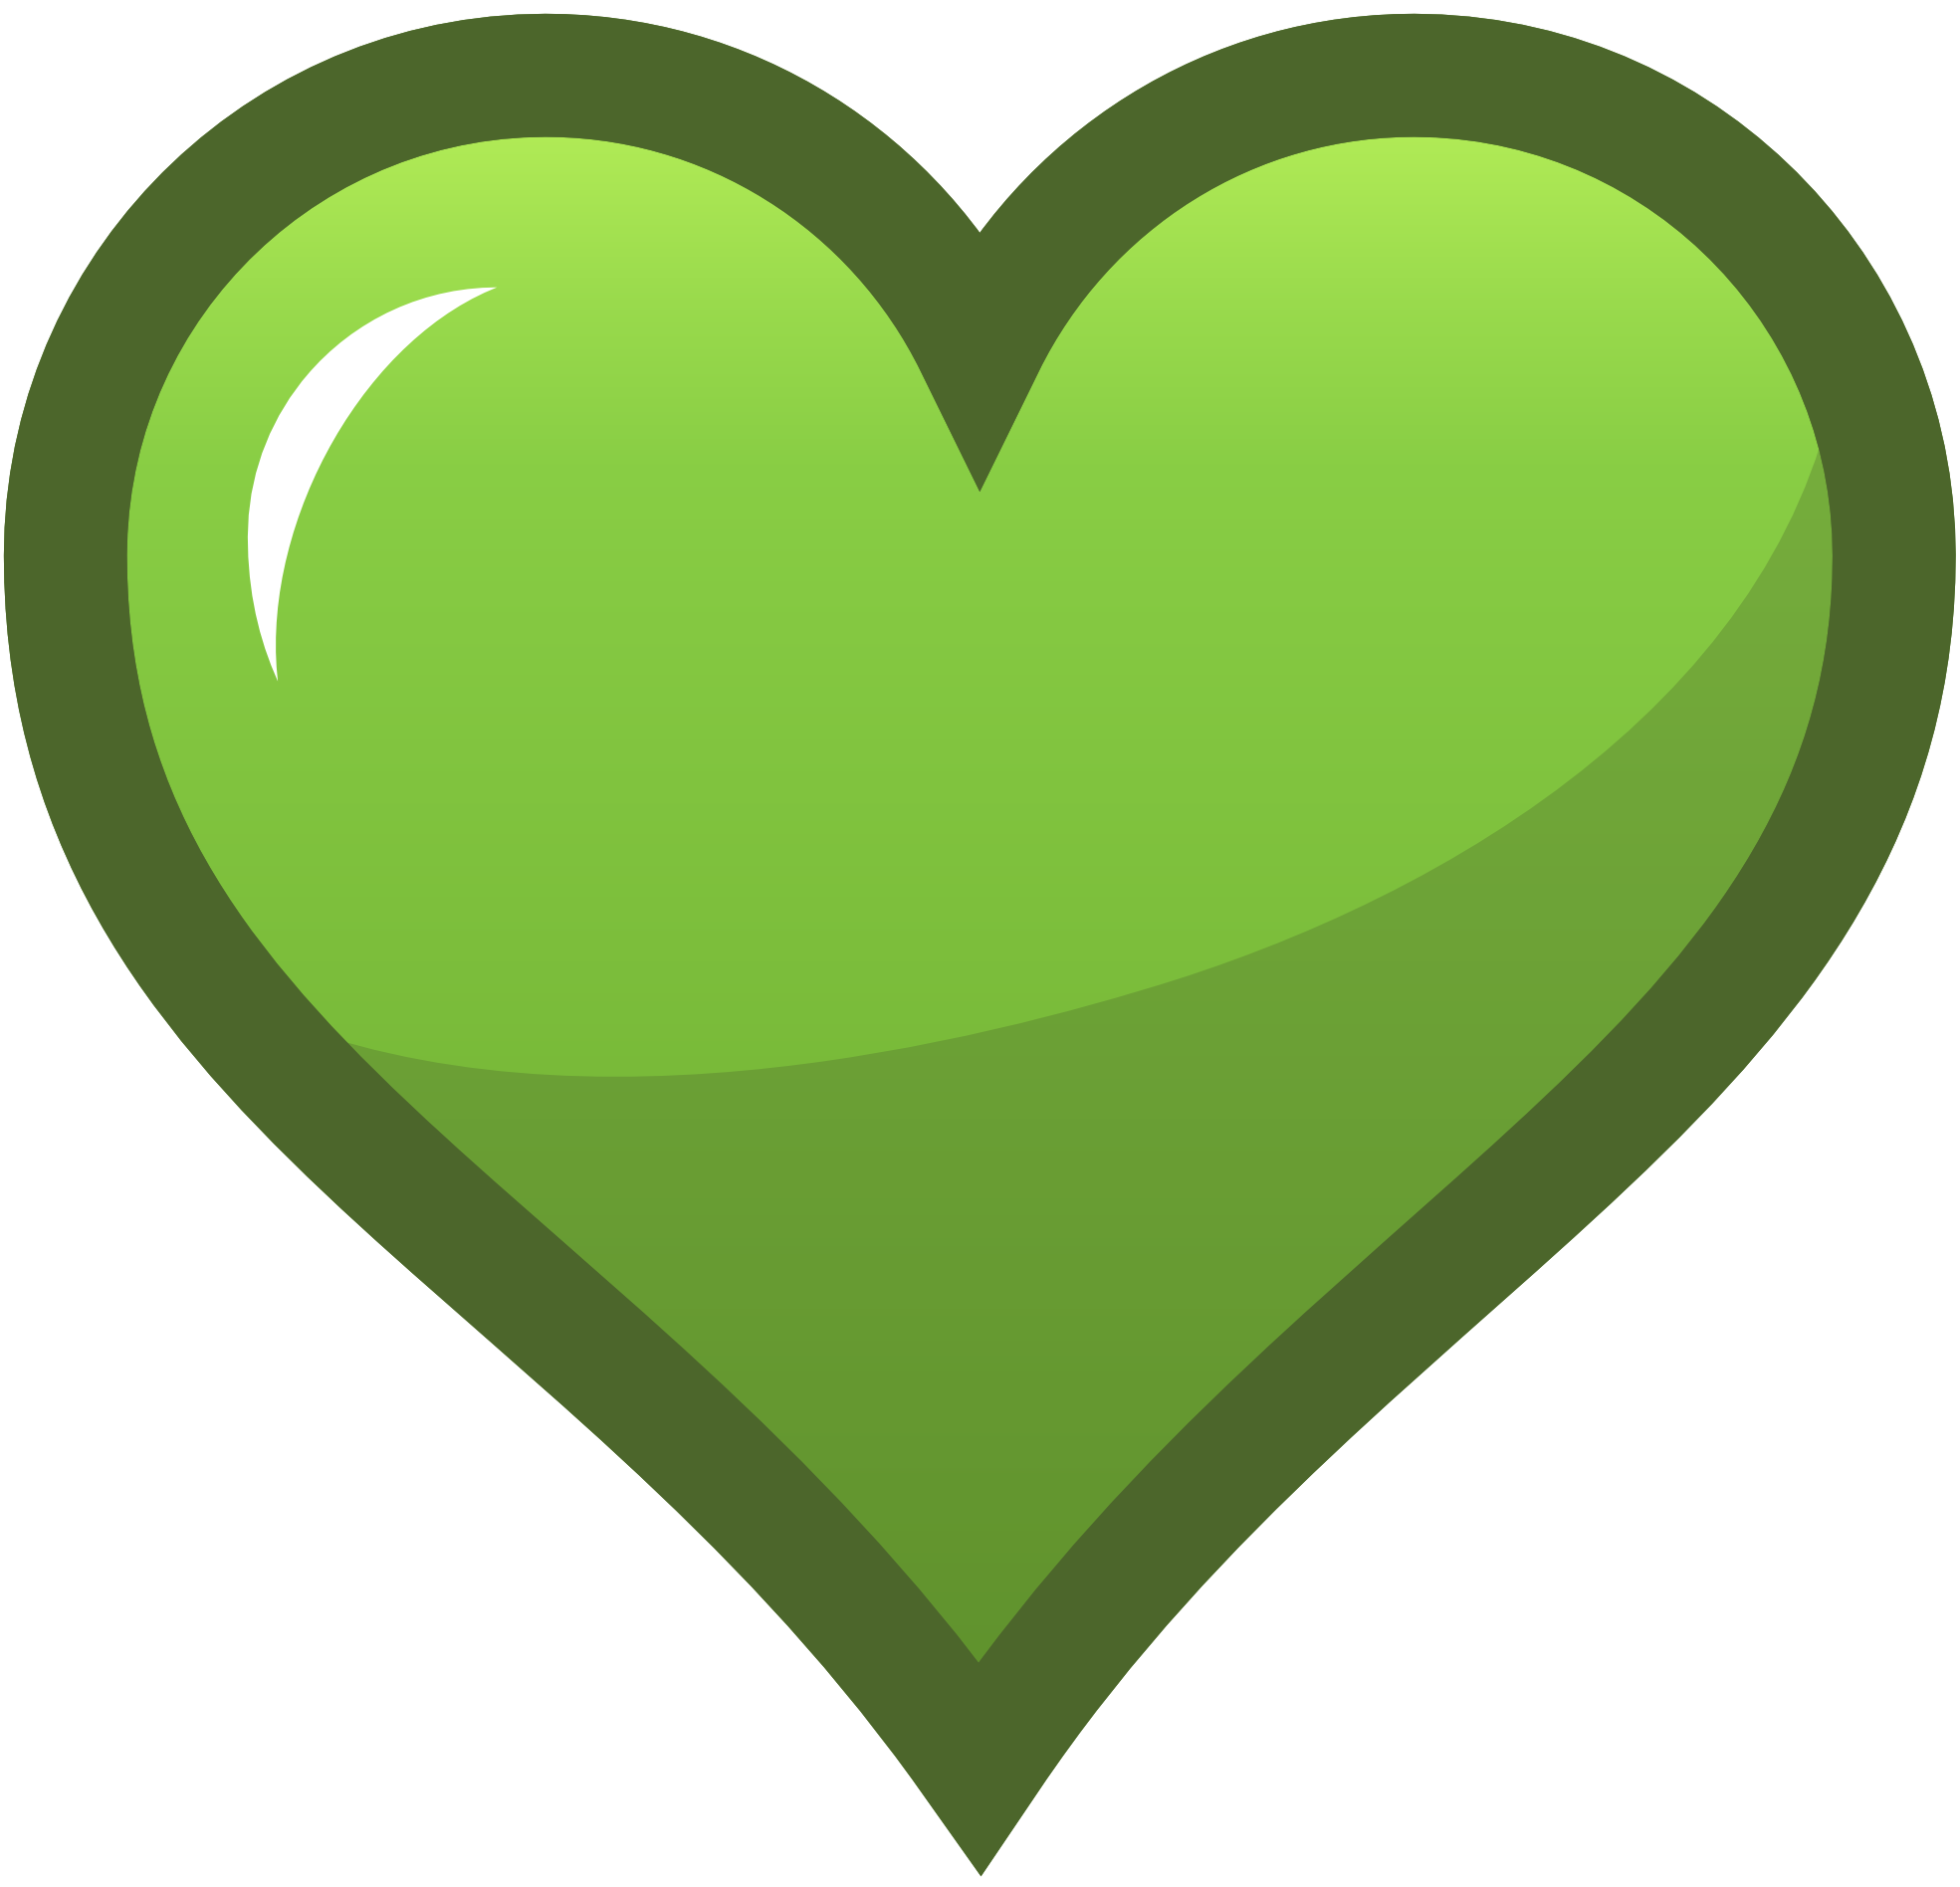 Lime green rose with heart clipart image freeuse download yellowgreen heart | Green Heart Icon OCAL Favorites Icon Selected ... image freeuse download